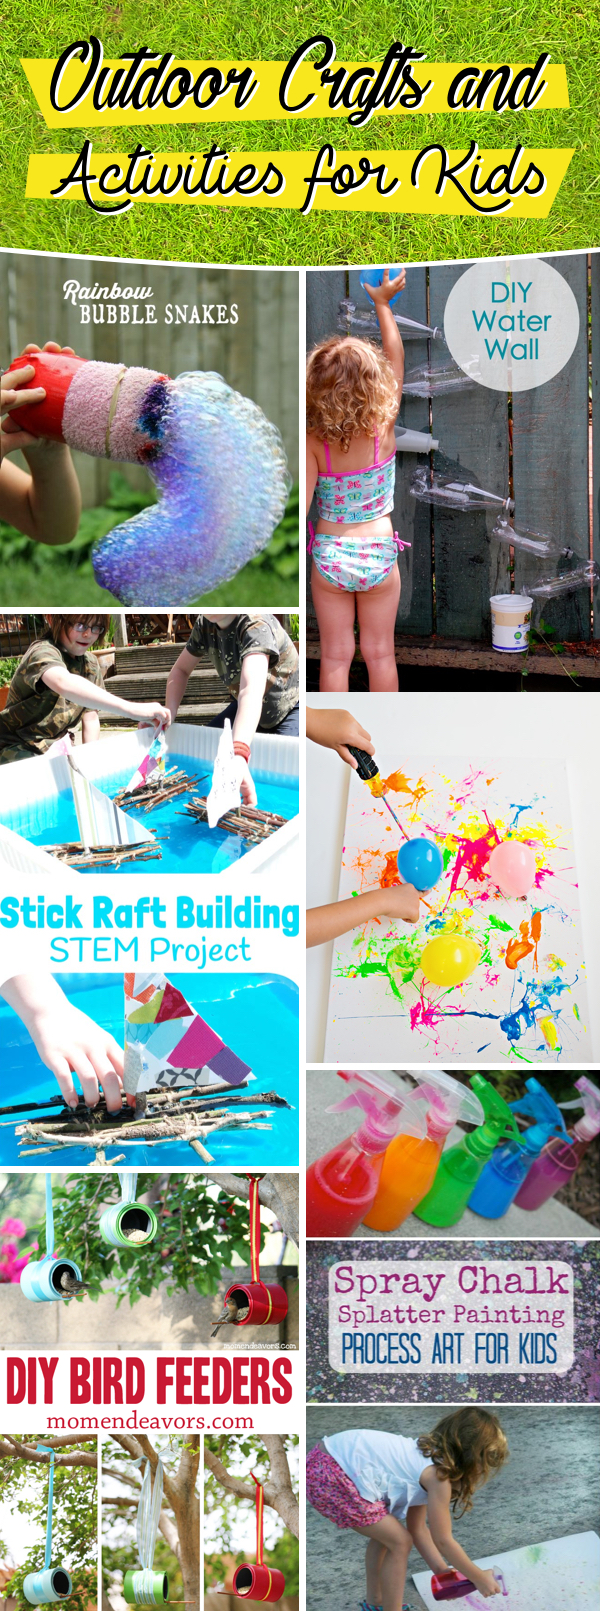 Outdoor Crafts and Activities for Kids